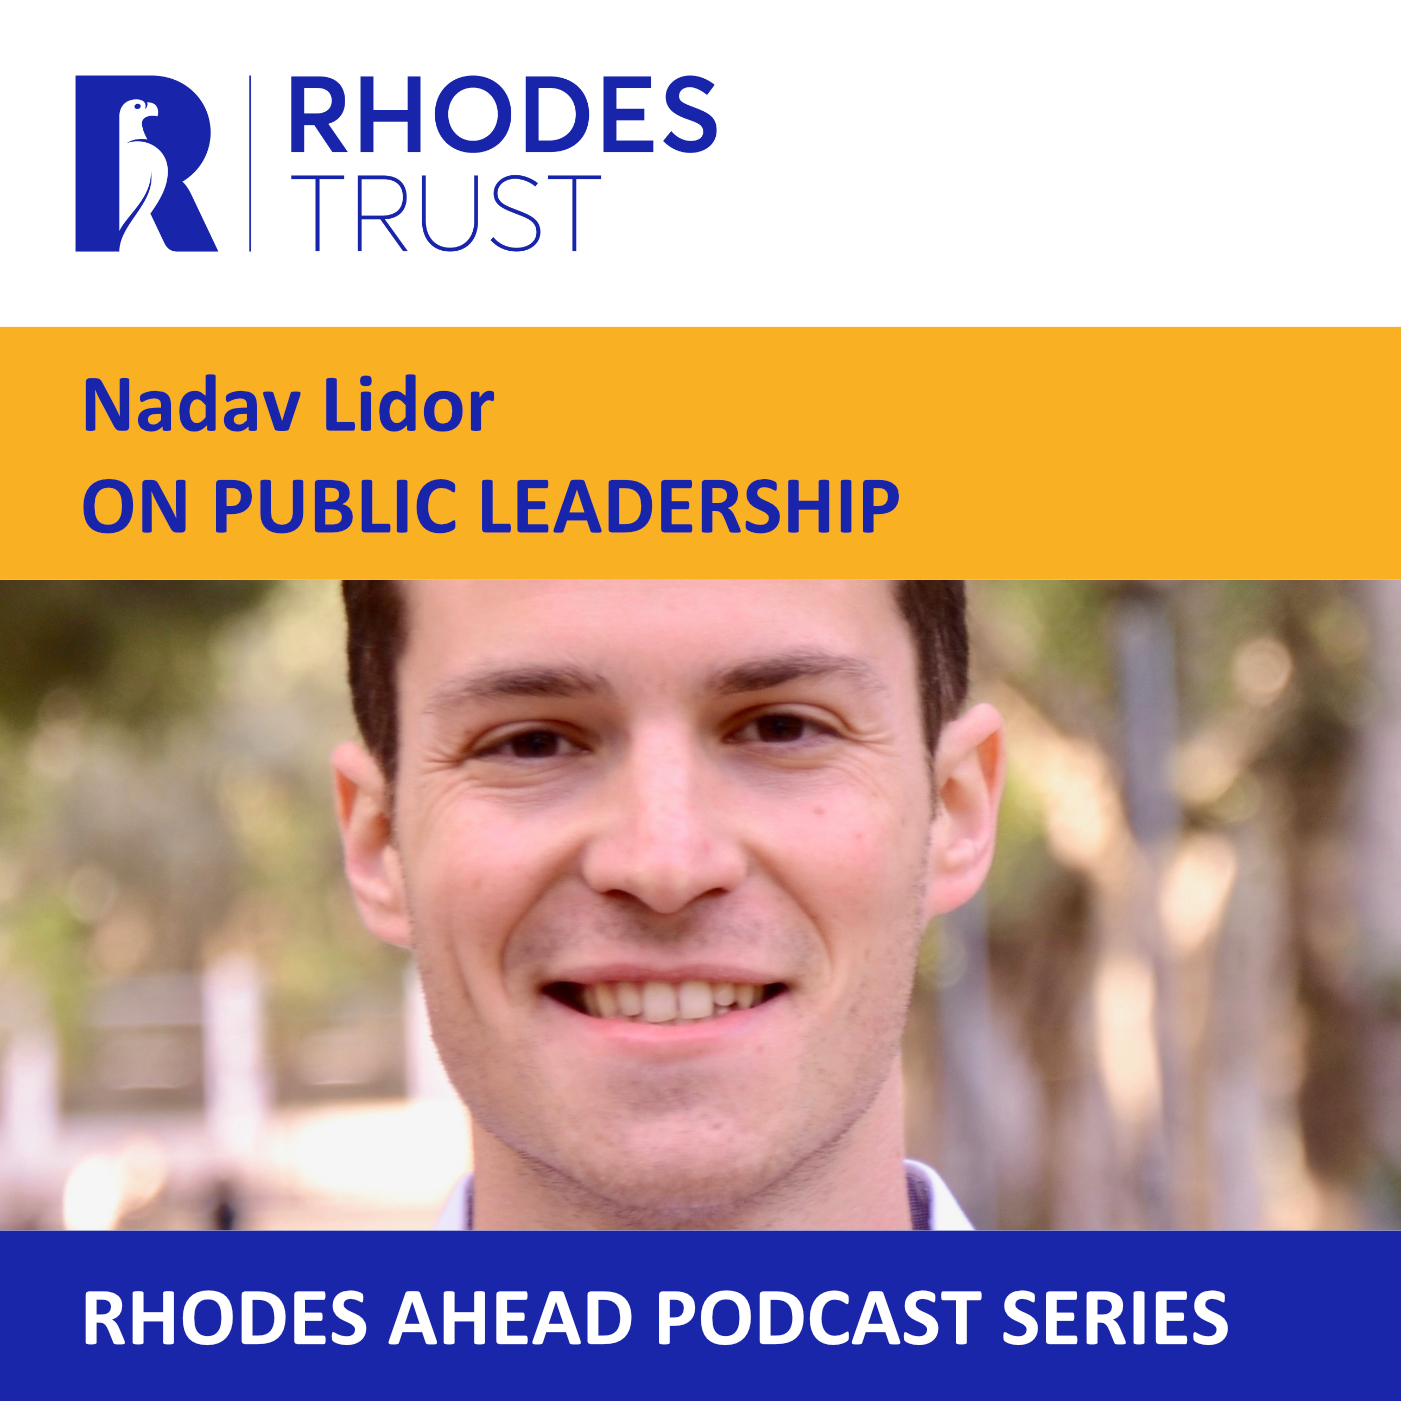 Nadav Lidor on Public Leadership